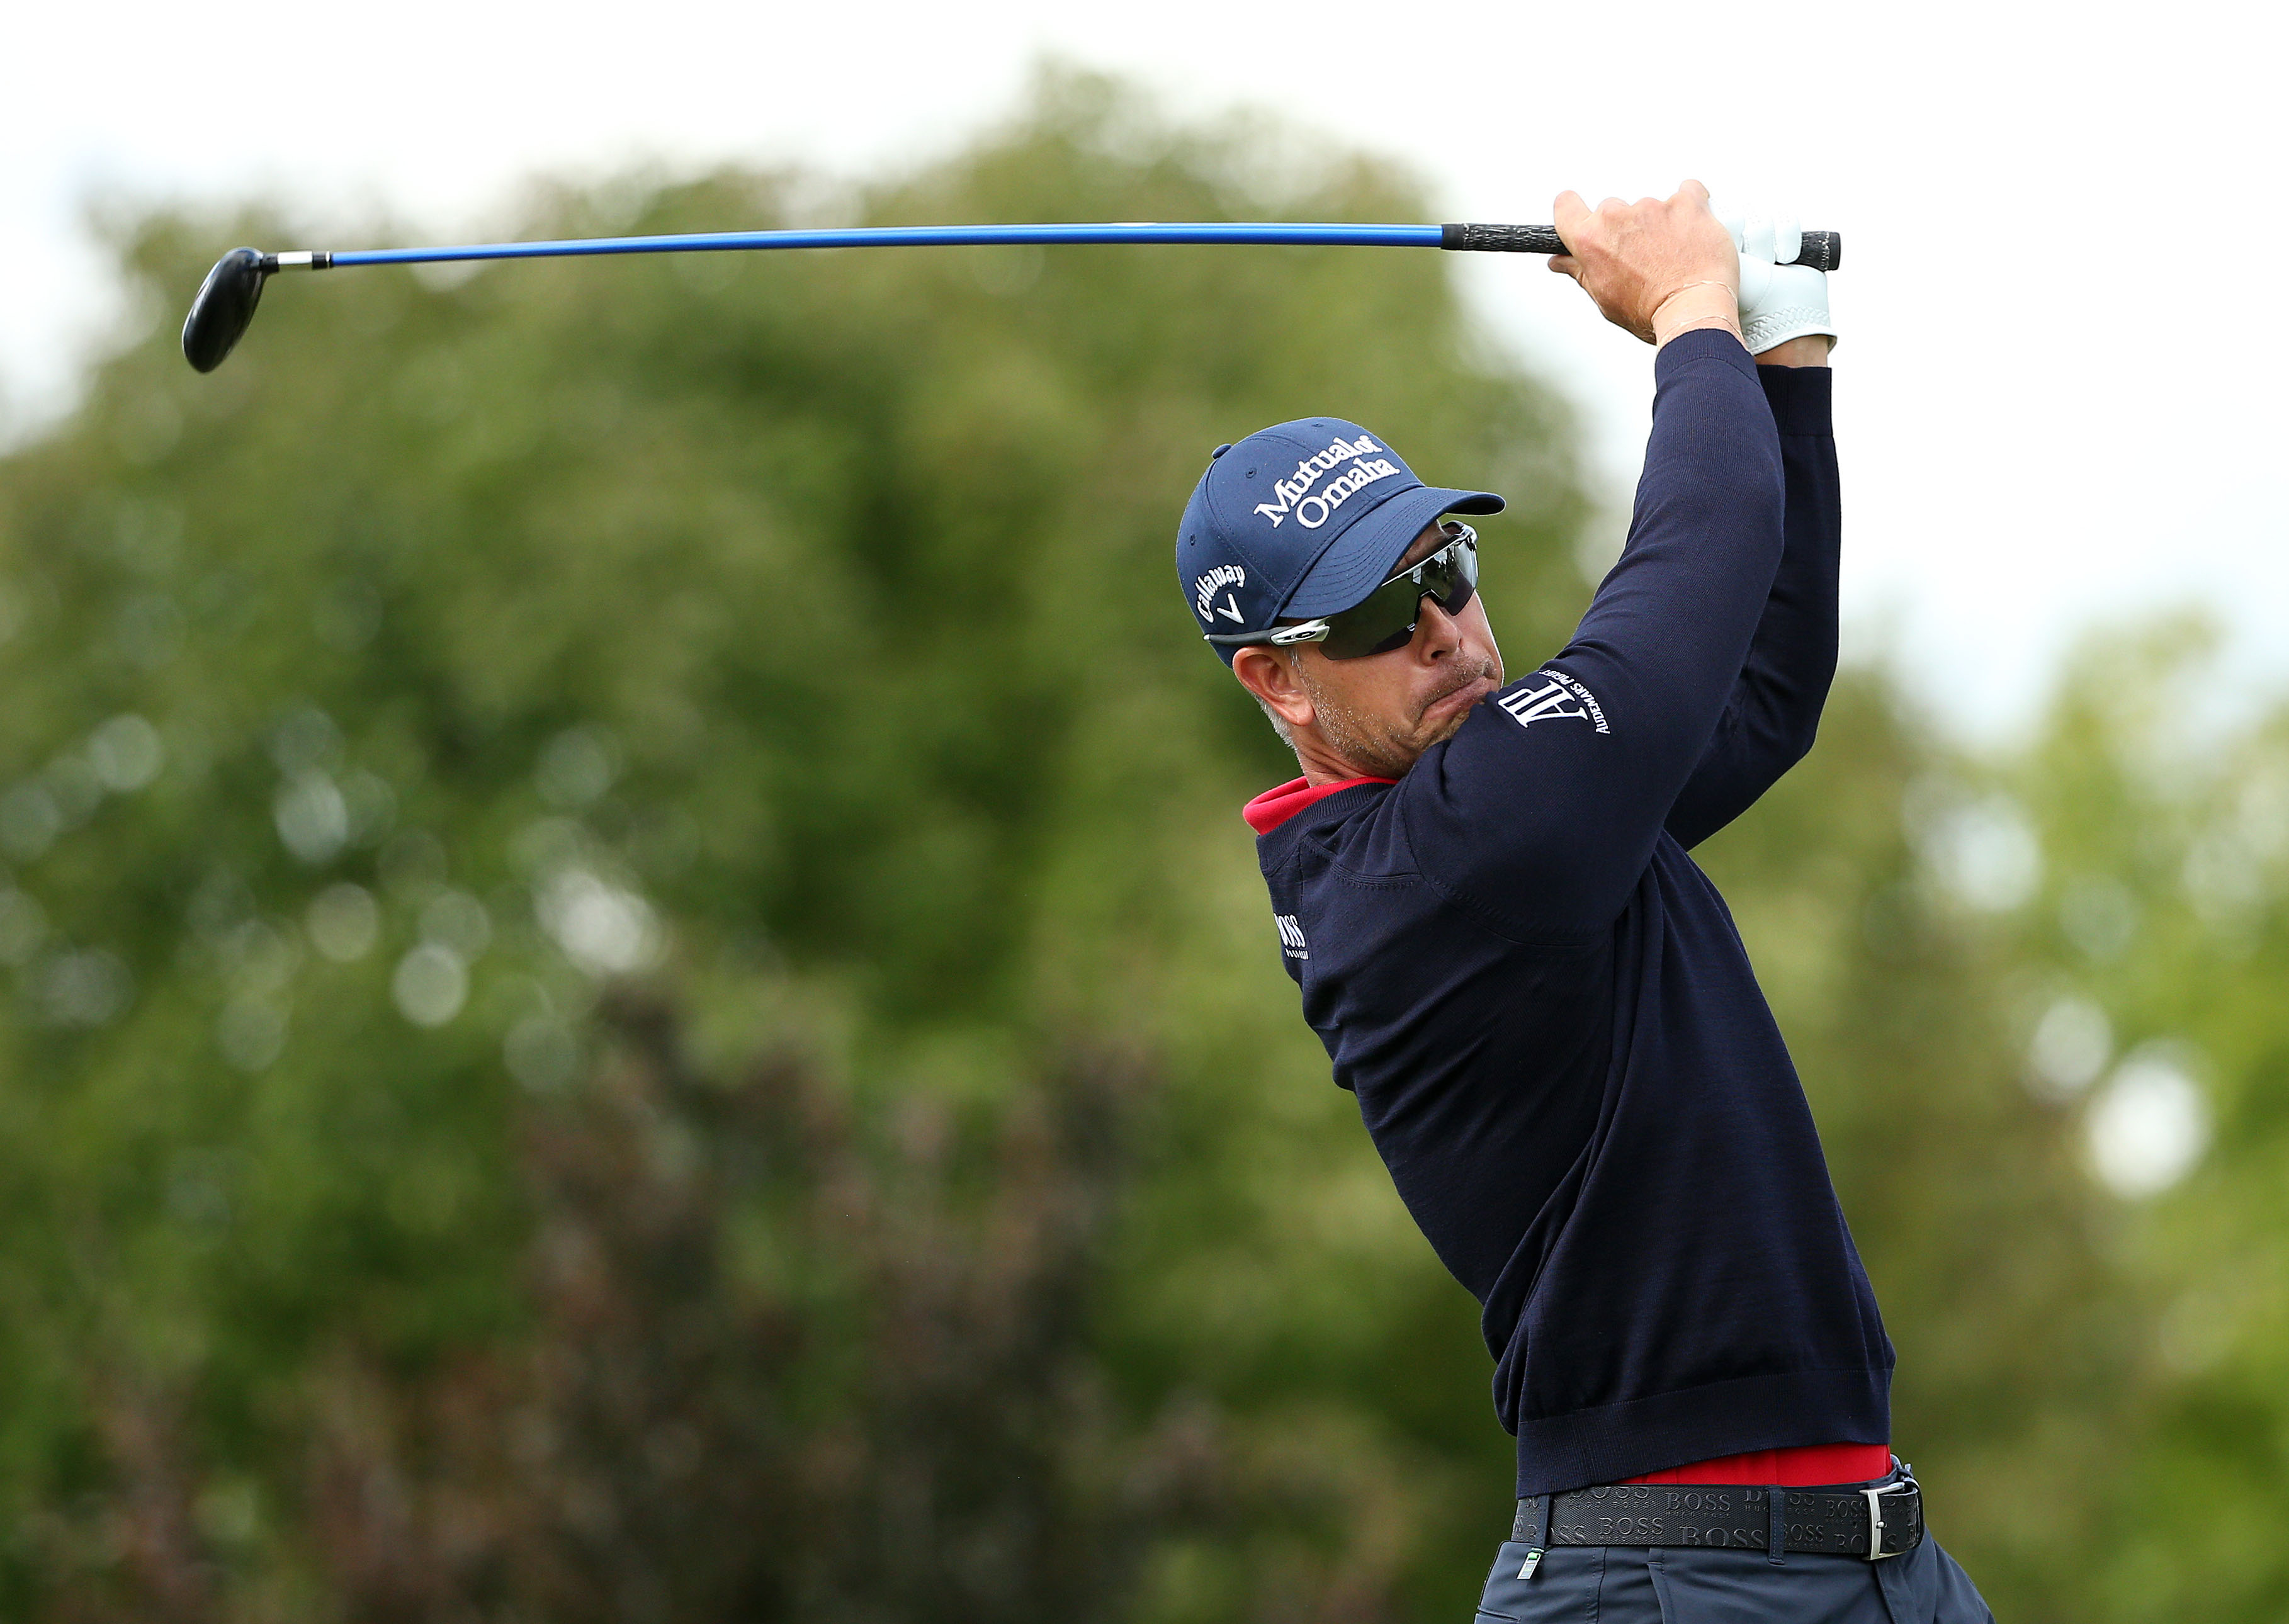 Stenson could win the FedEx Cup without triumphing in a tournament all season (Photo: Getty Images)